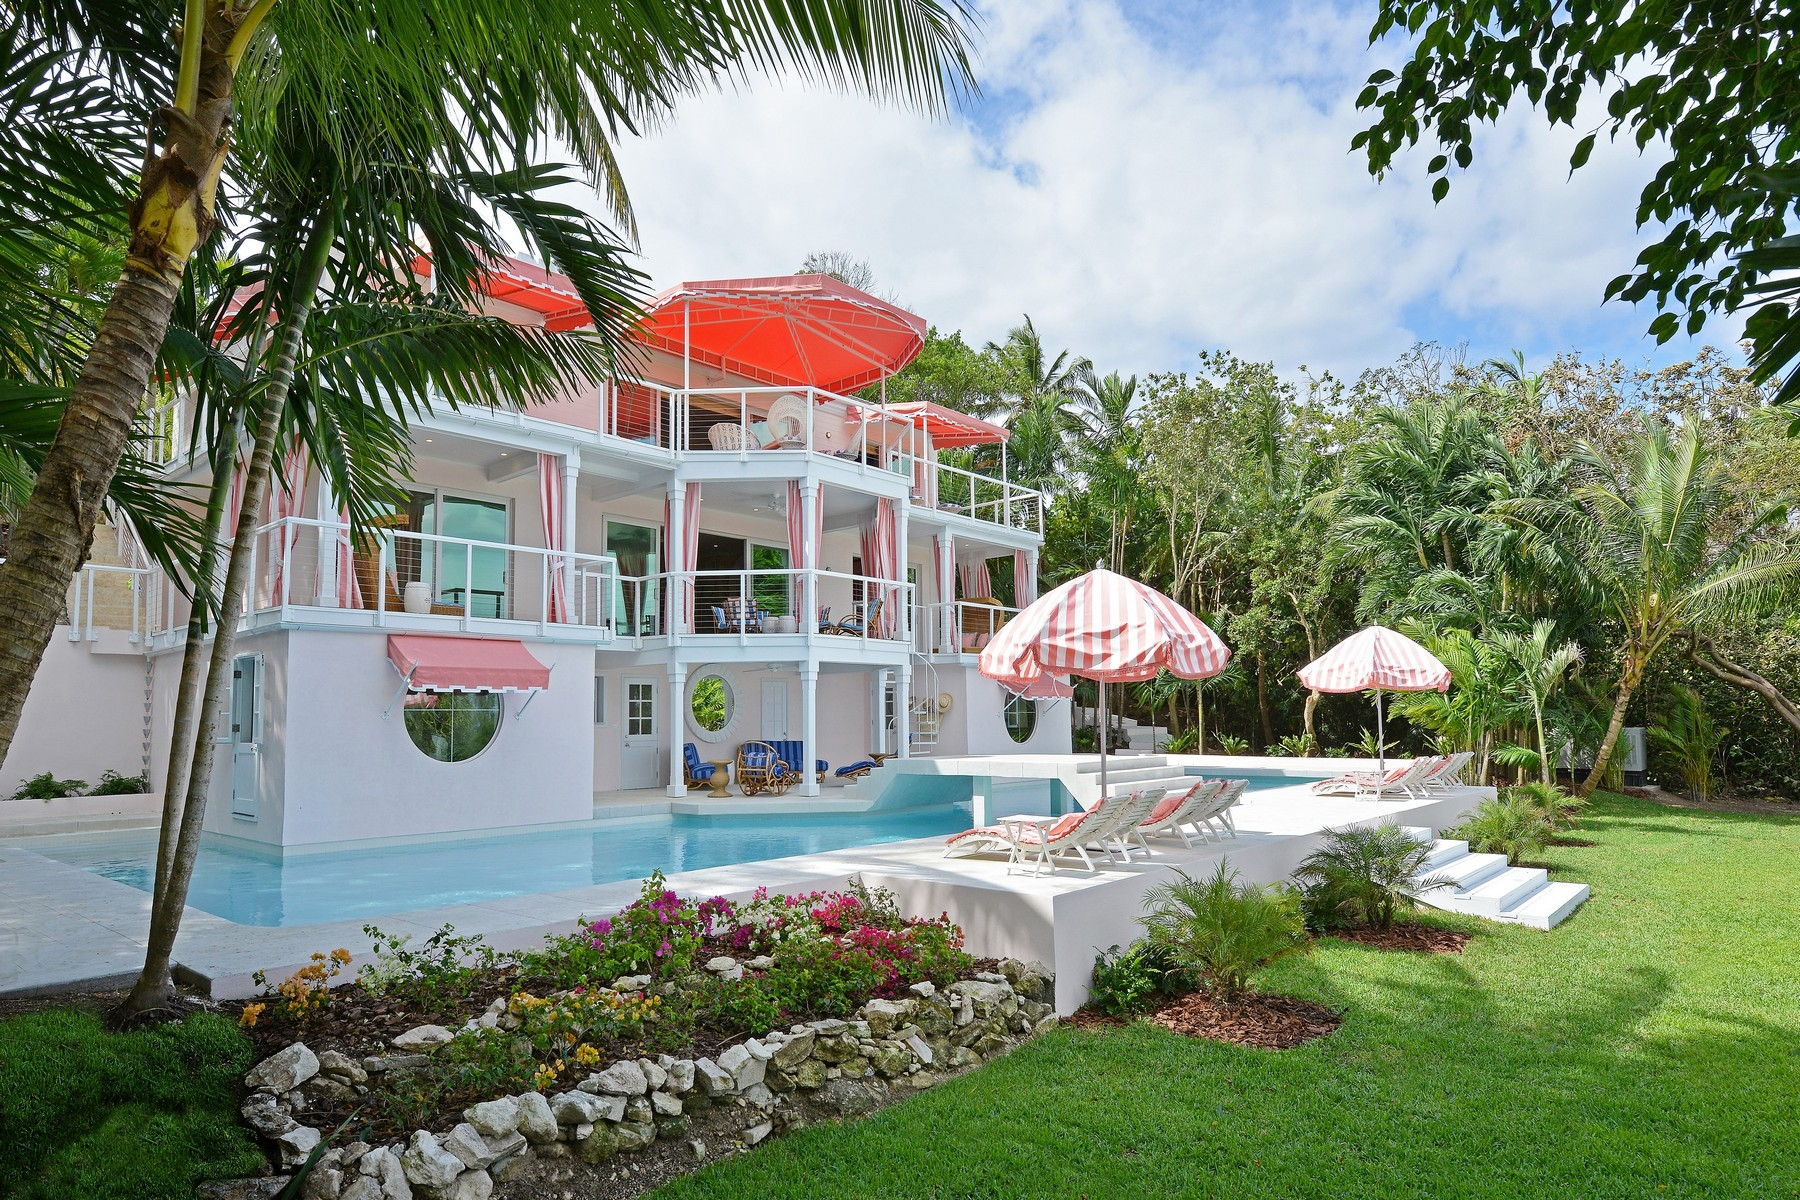 Single Family Home for Sale at Minor Cay Lyford Cay, Nassau And Paradise Island, Bahamas